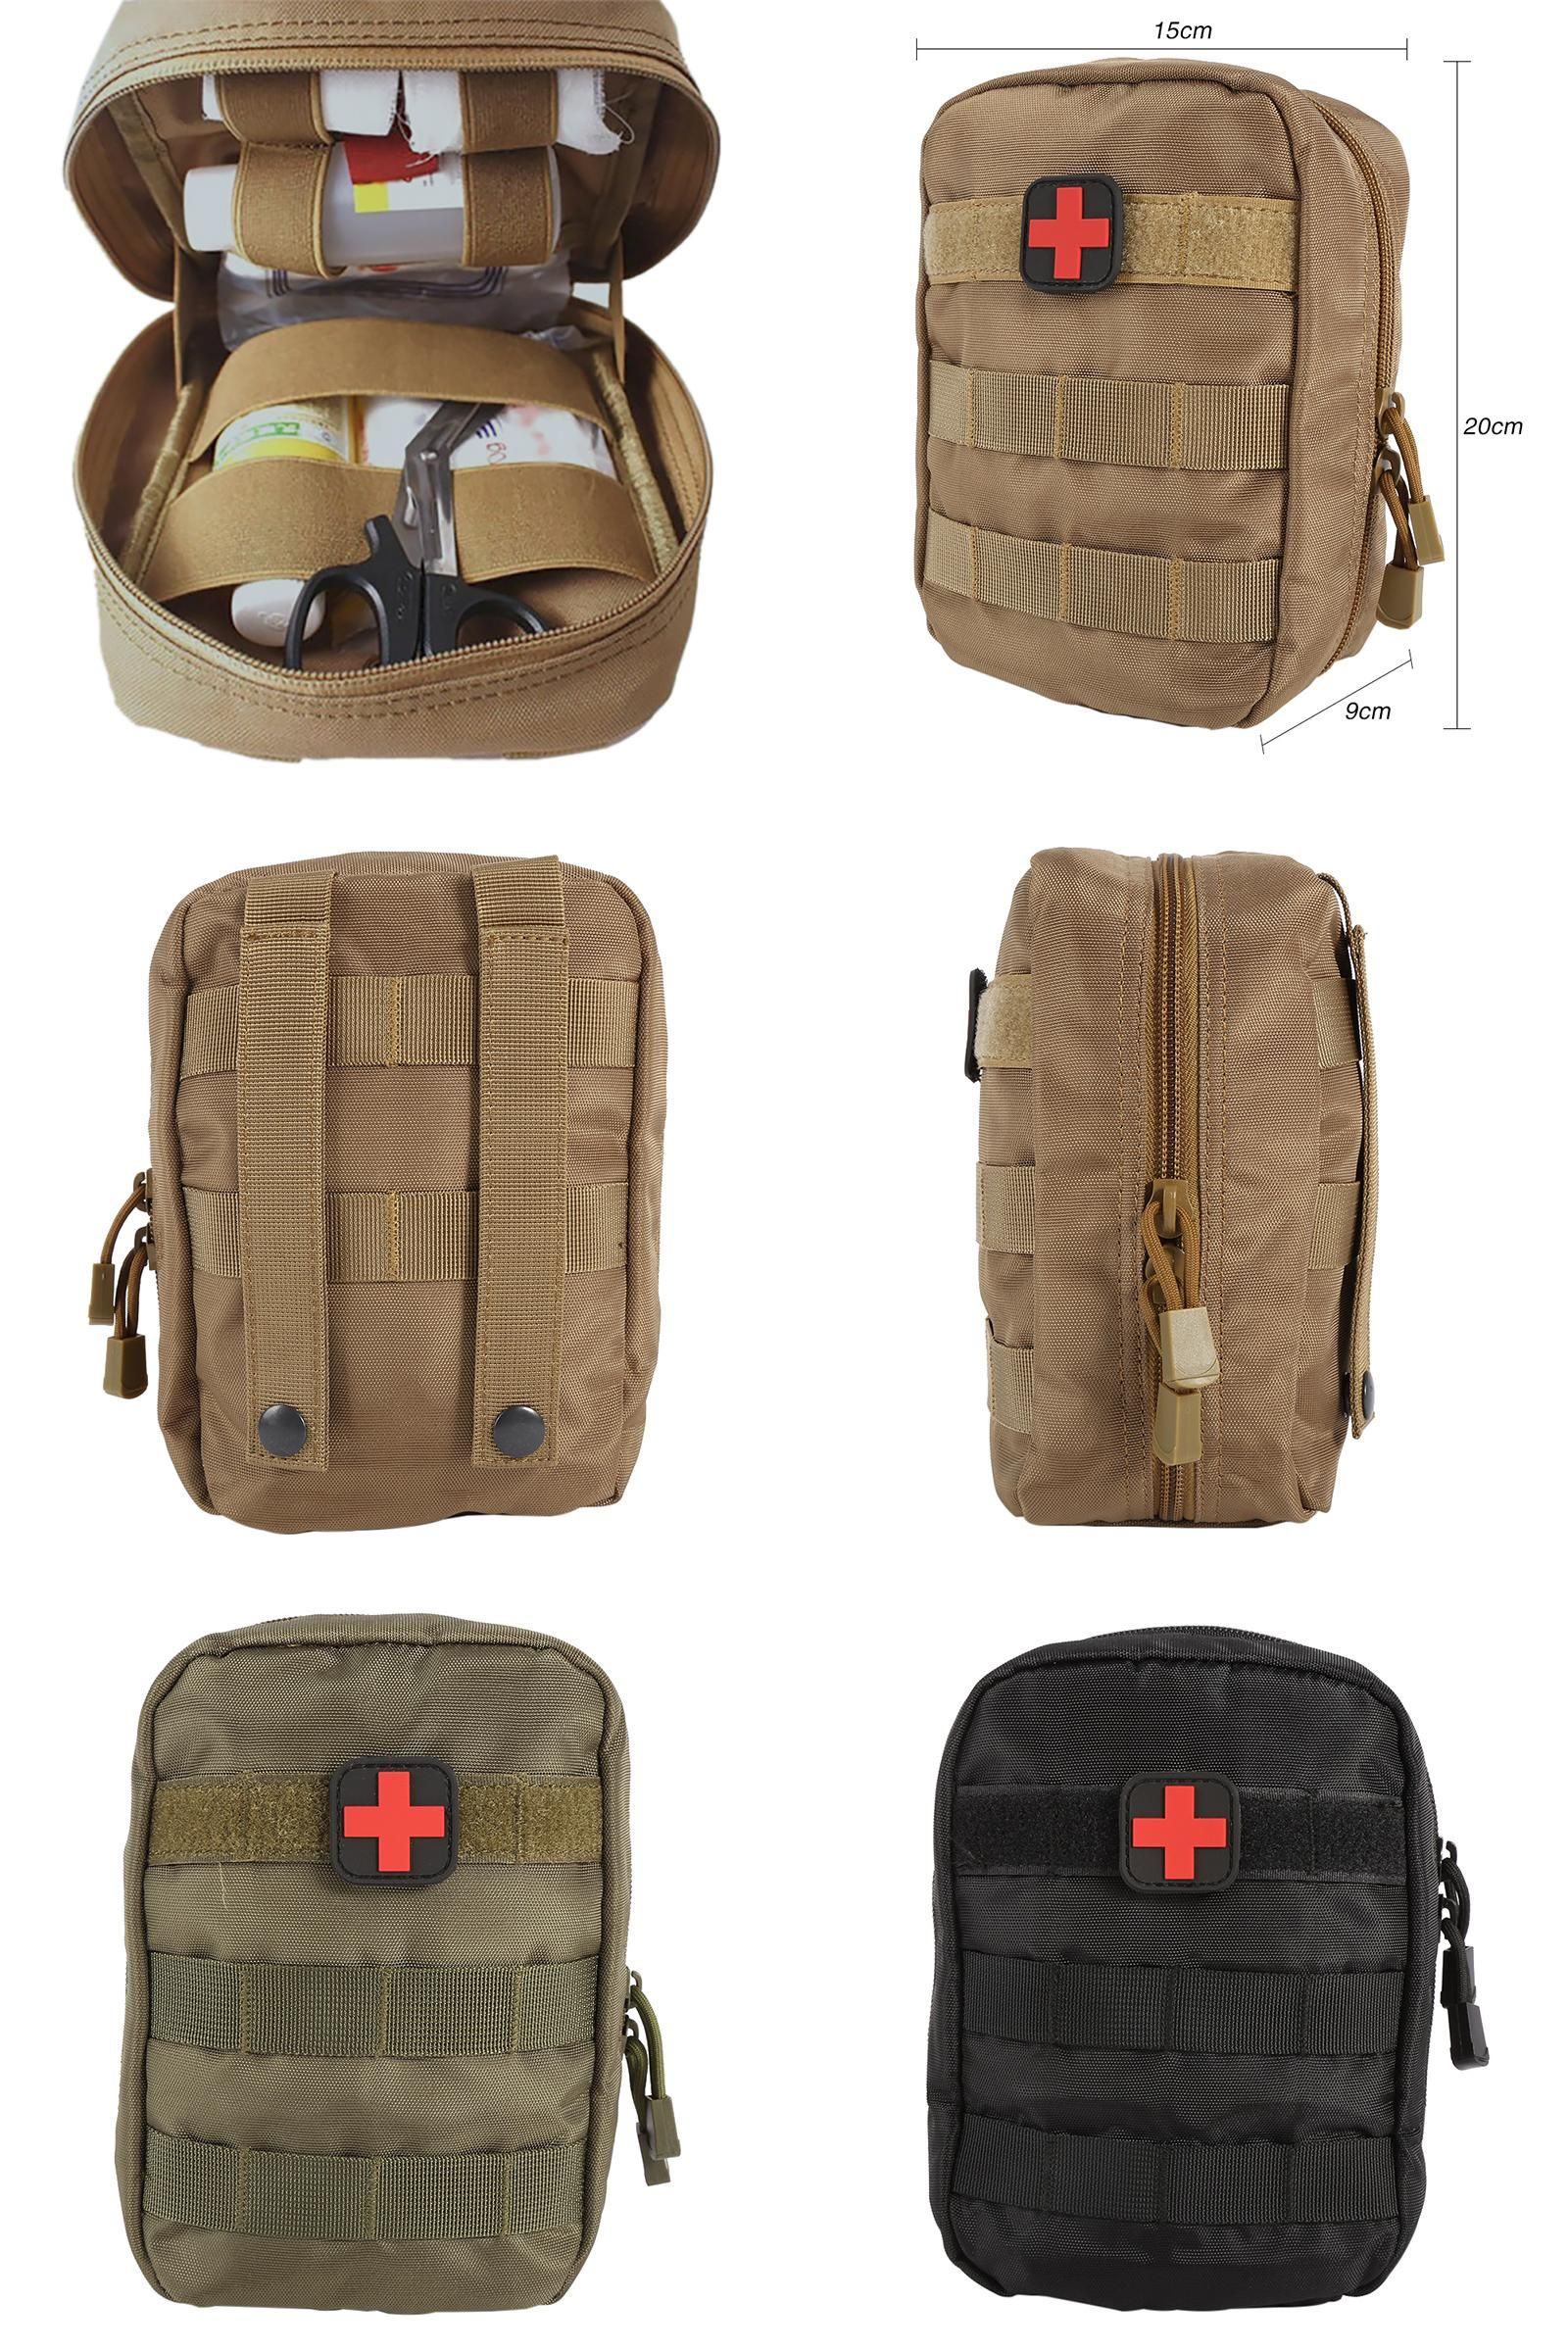 fdfcf1b6e80248 [Visit to Buy] Outdoor MOLLE System Medical Accessory Bag Tactical EMT  Medical First Aid IFAK Bag Military Pack Black/Army Green/Mud color  #Advertisement